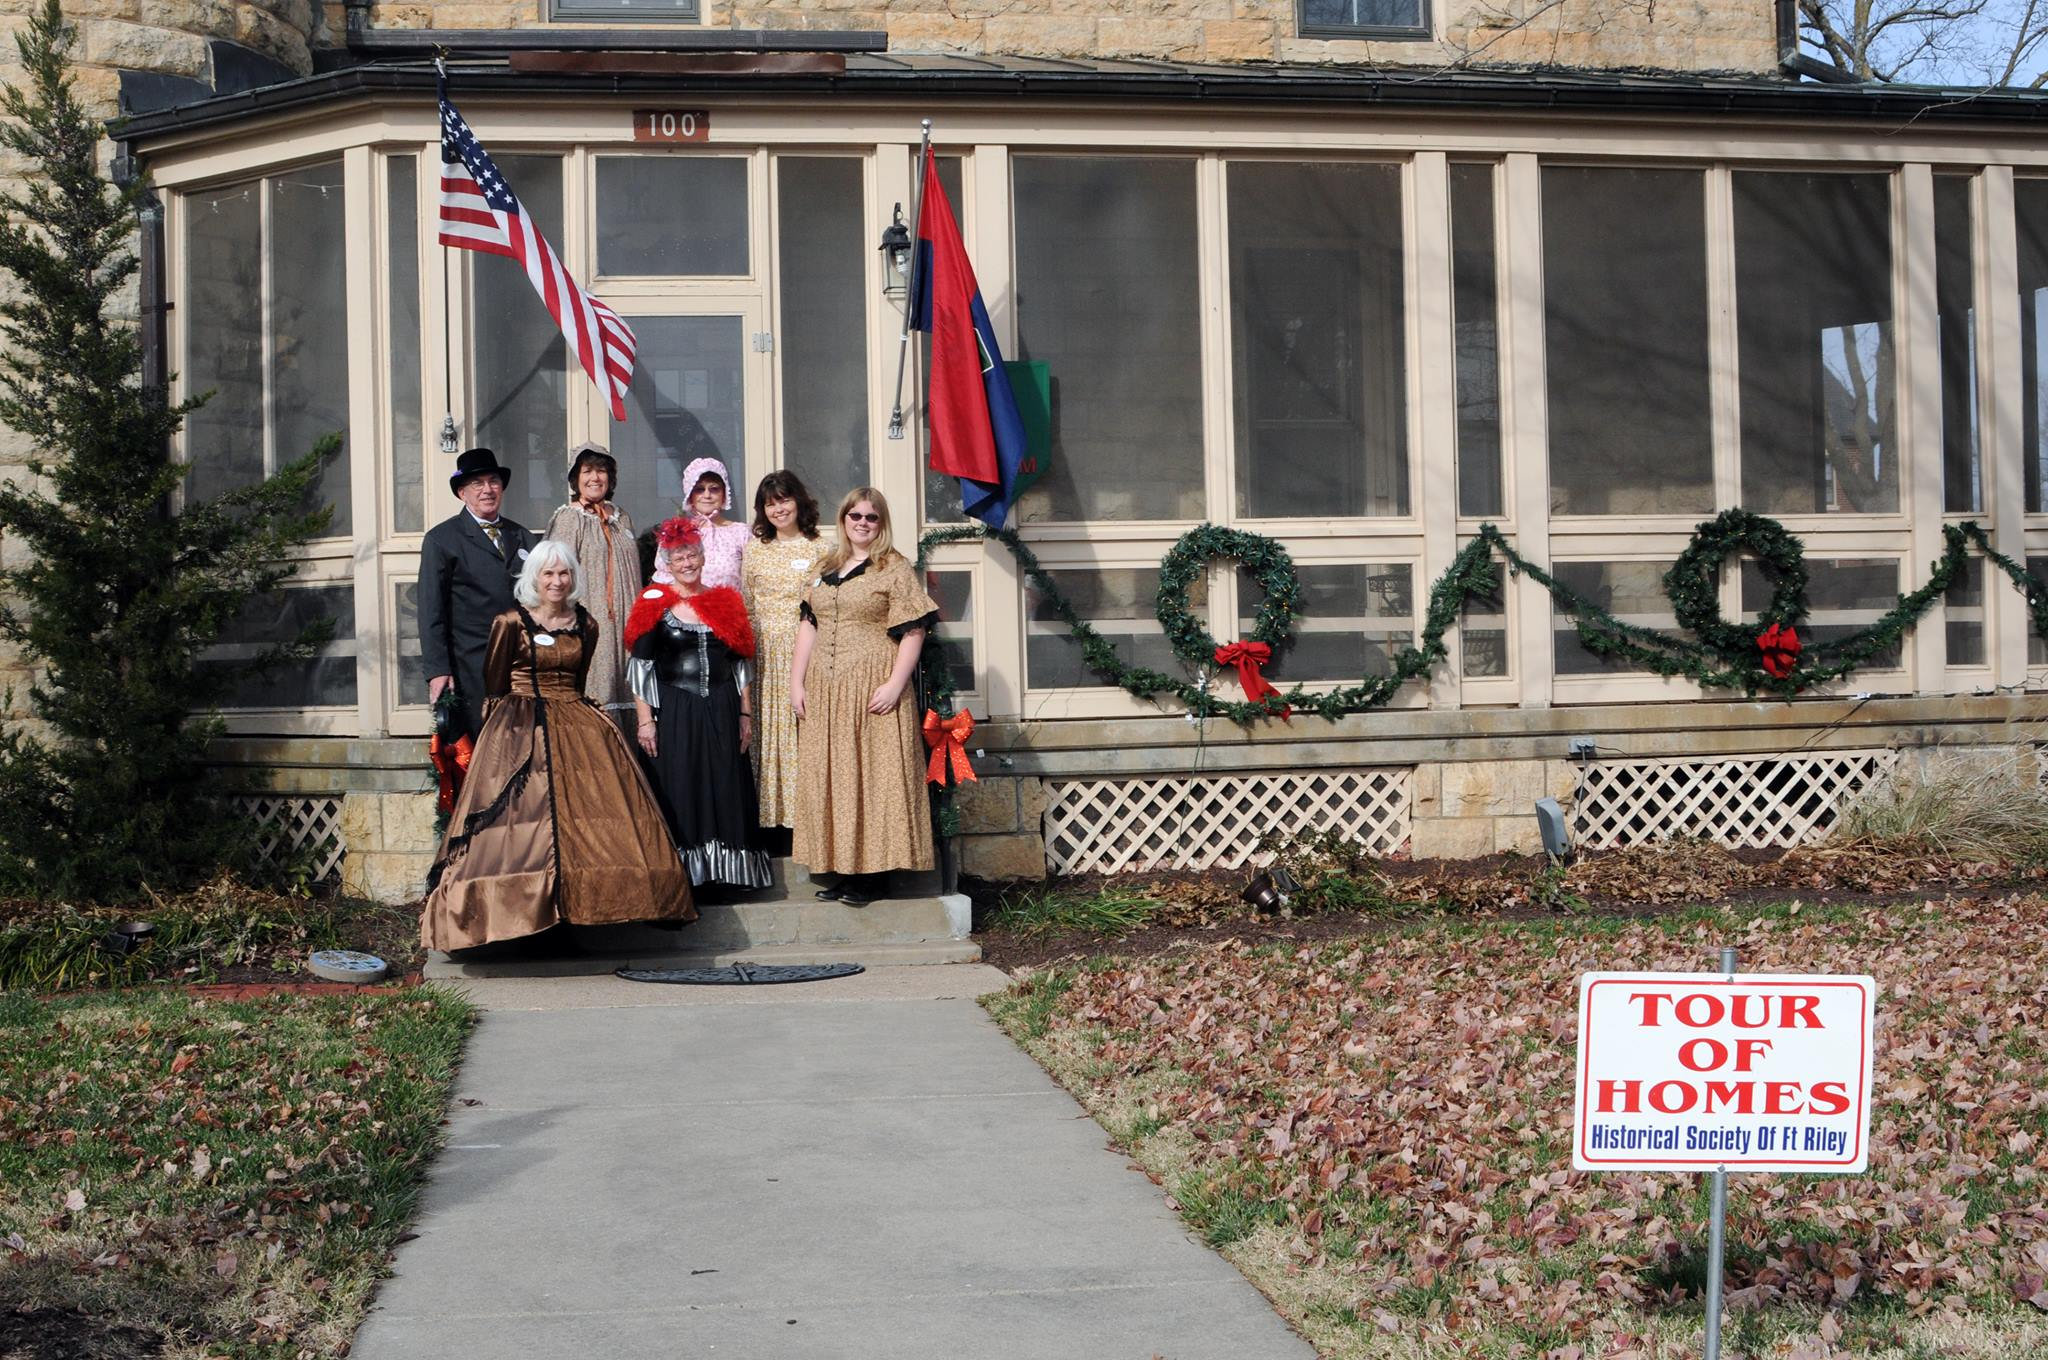 Fort Riley Hosts Holiday Tour of Homes